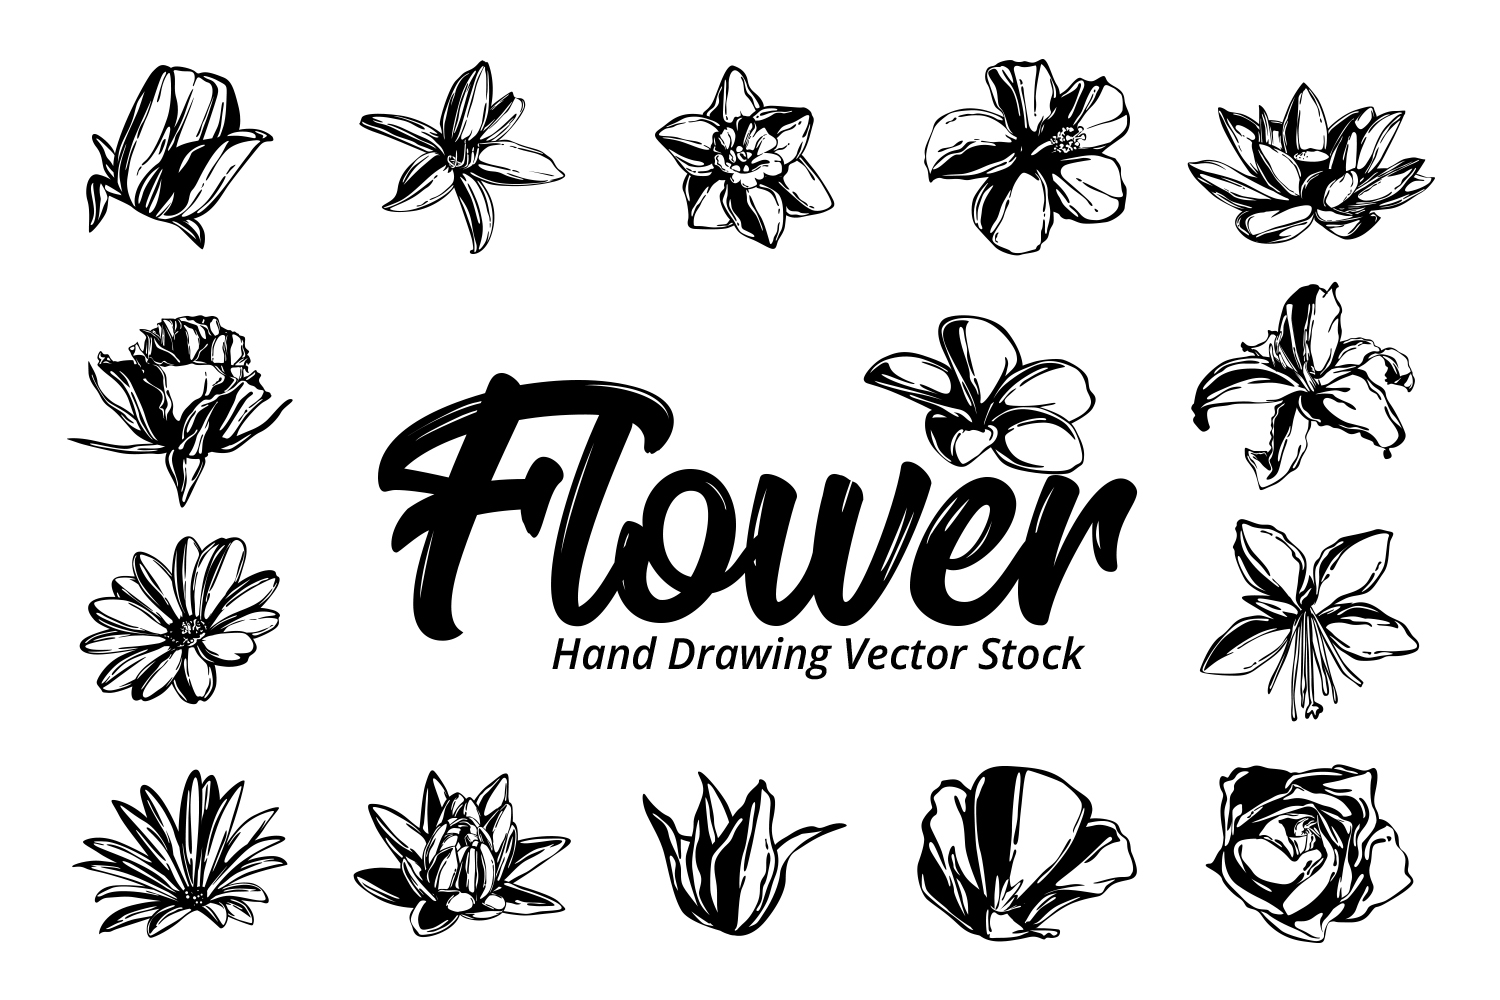 Flower Hand Drawing Vector example image 1